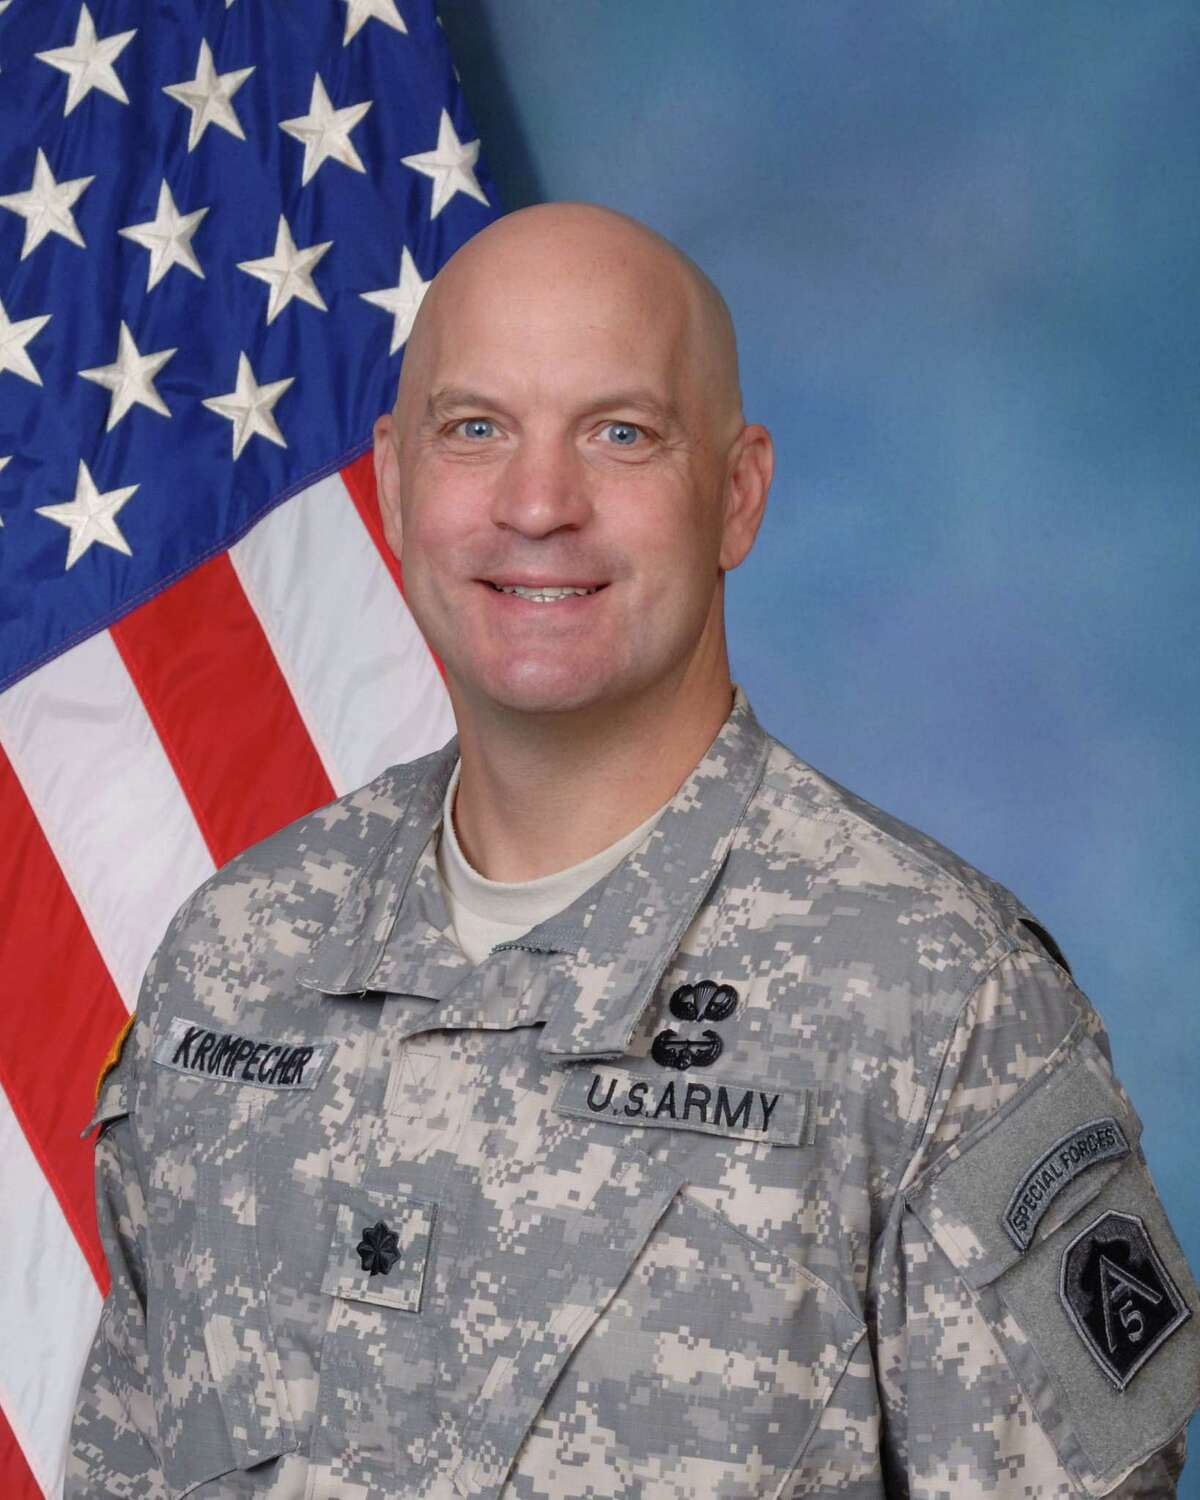 """Lt. Col. Zoltan Krompecher is a contributing writer to the book """"Operation Homecoming."""" He lives with his family on Fort Sam Houston, where he serves as a member of U.S. Army North. These views are his own."""